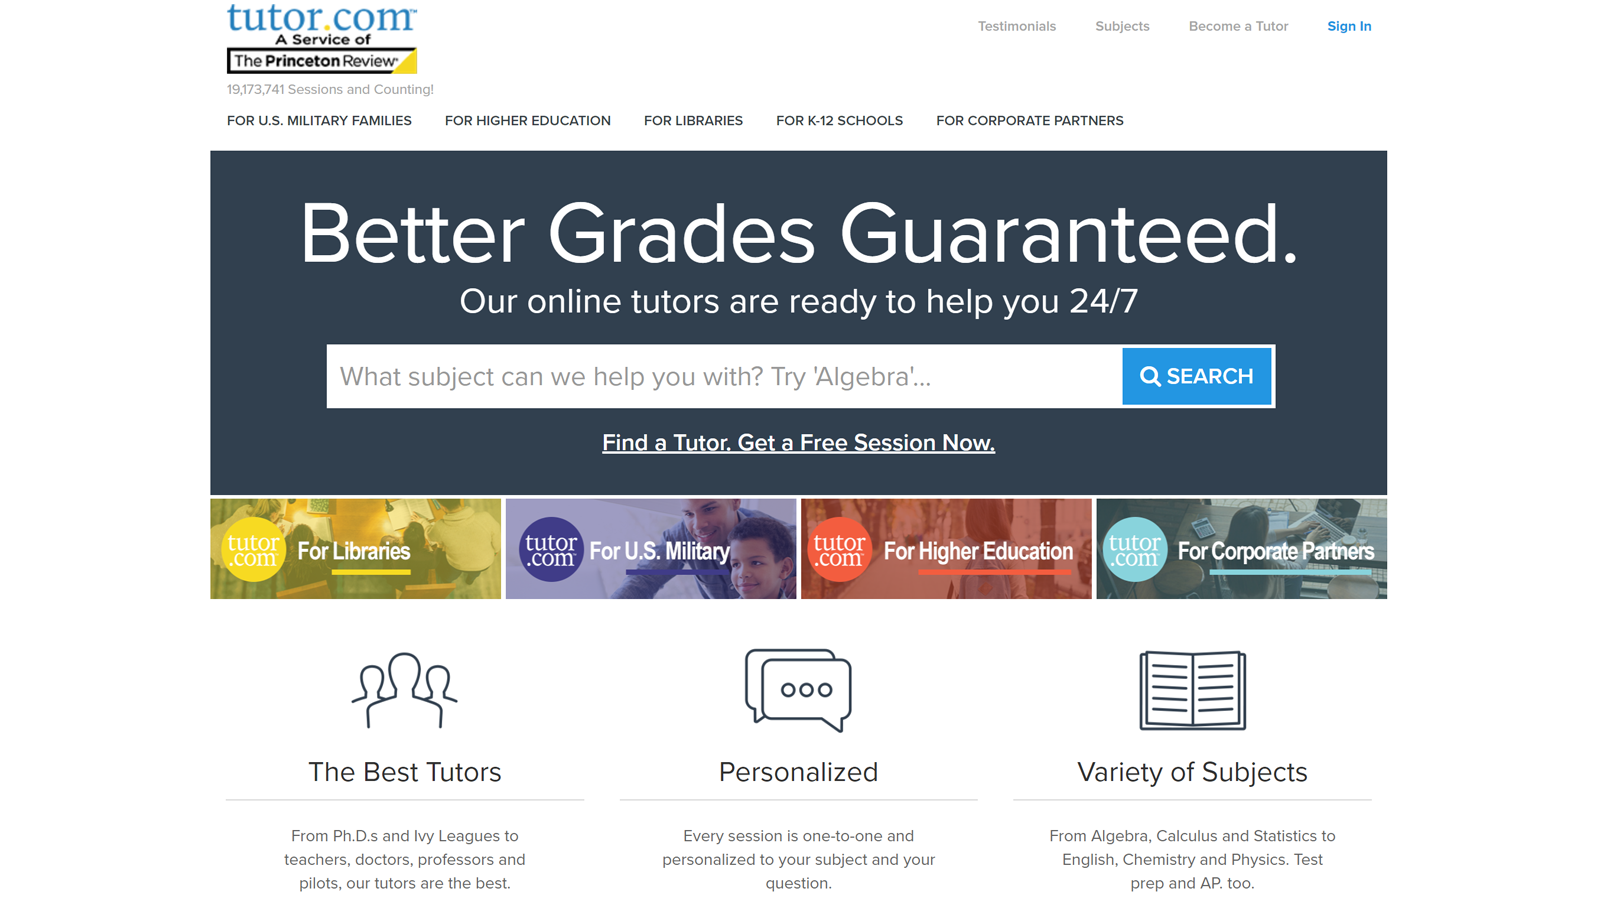 Tutor.com home page with subject and tutor options